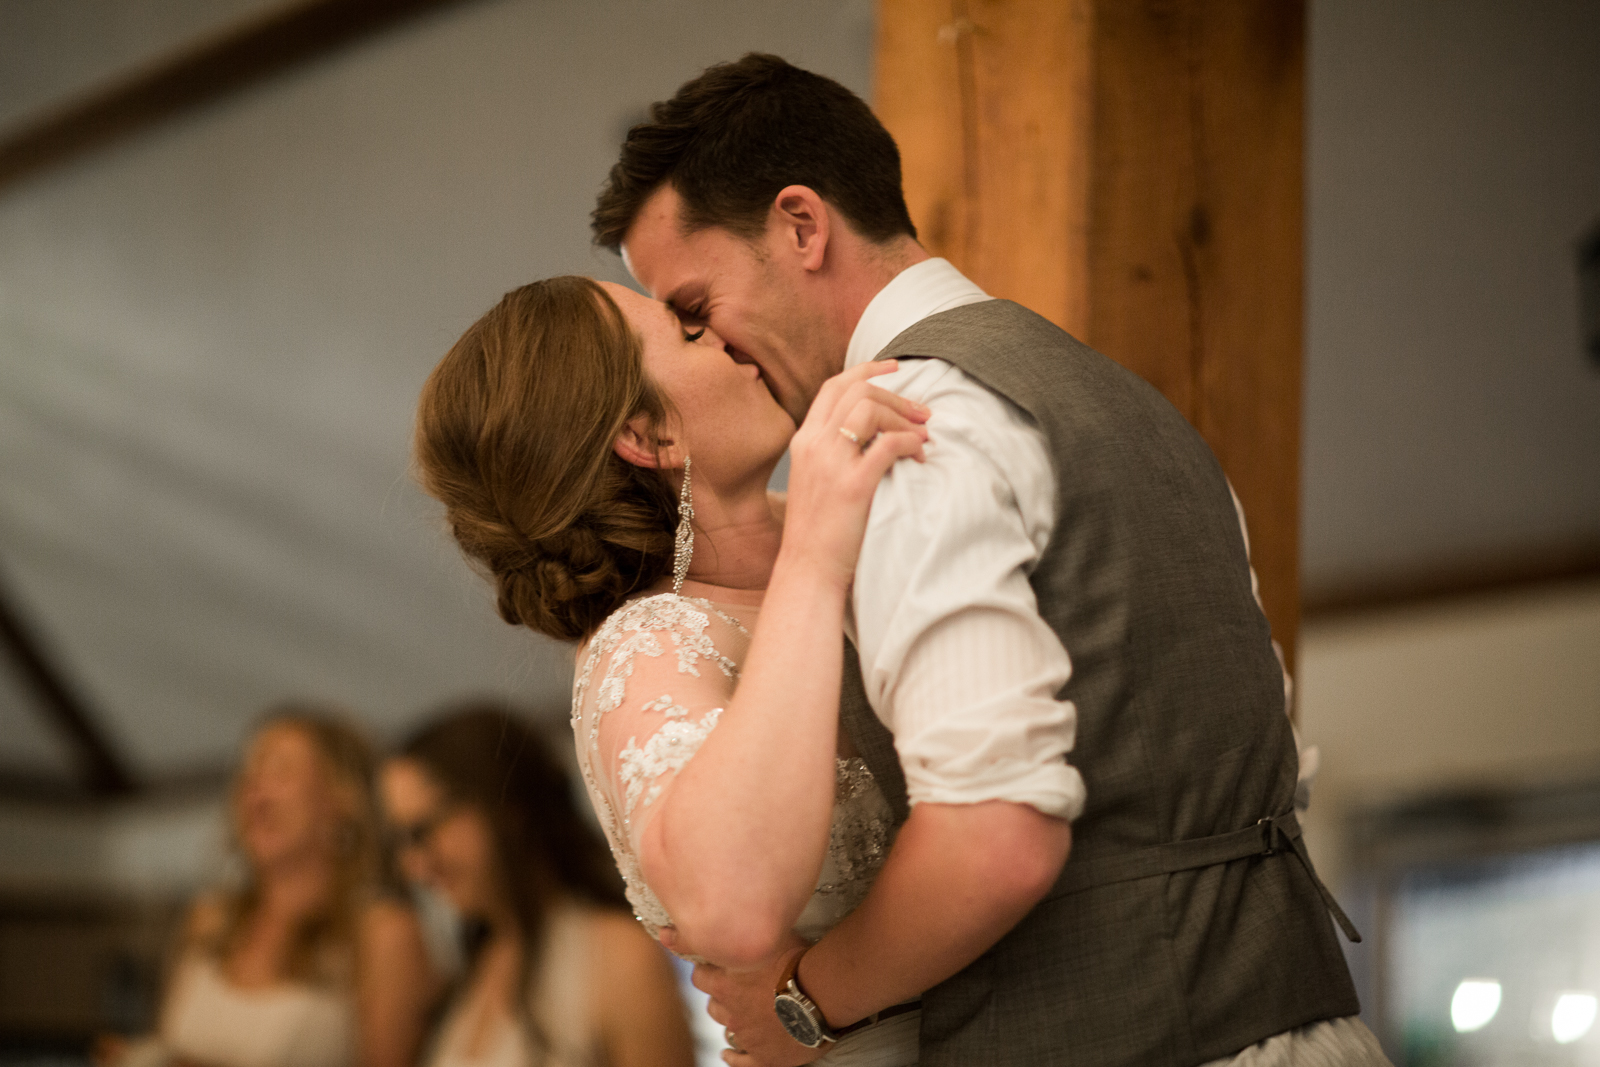 111Willow_and_Wolf_Photography_Katie_and_James_Waterton_Wedding_Blog80-Willow_and_Wolf_Photography_Katie_and_James_Waterton_Wedding_Reception_ATP_6415